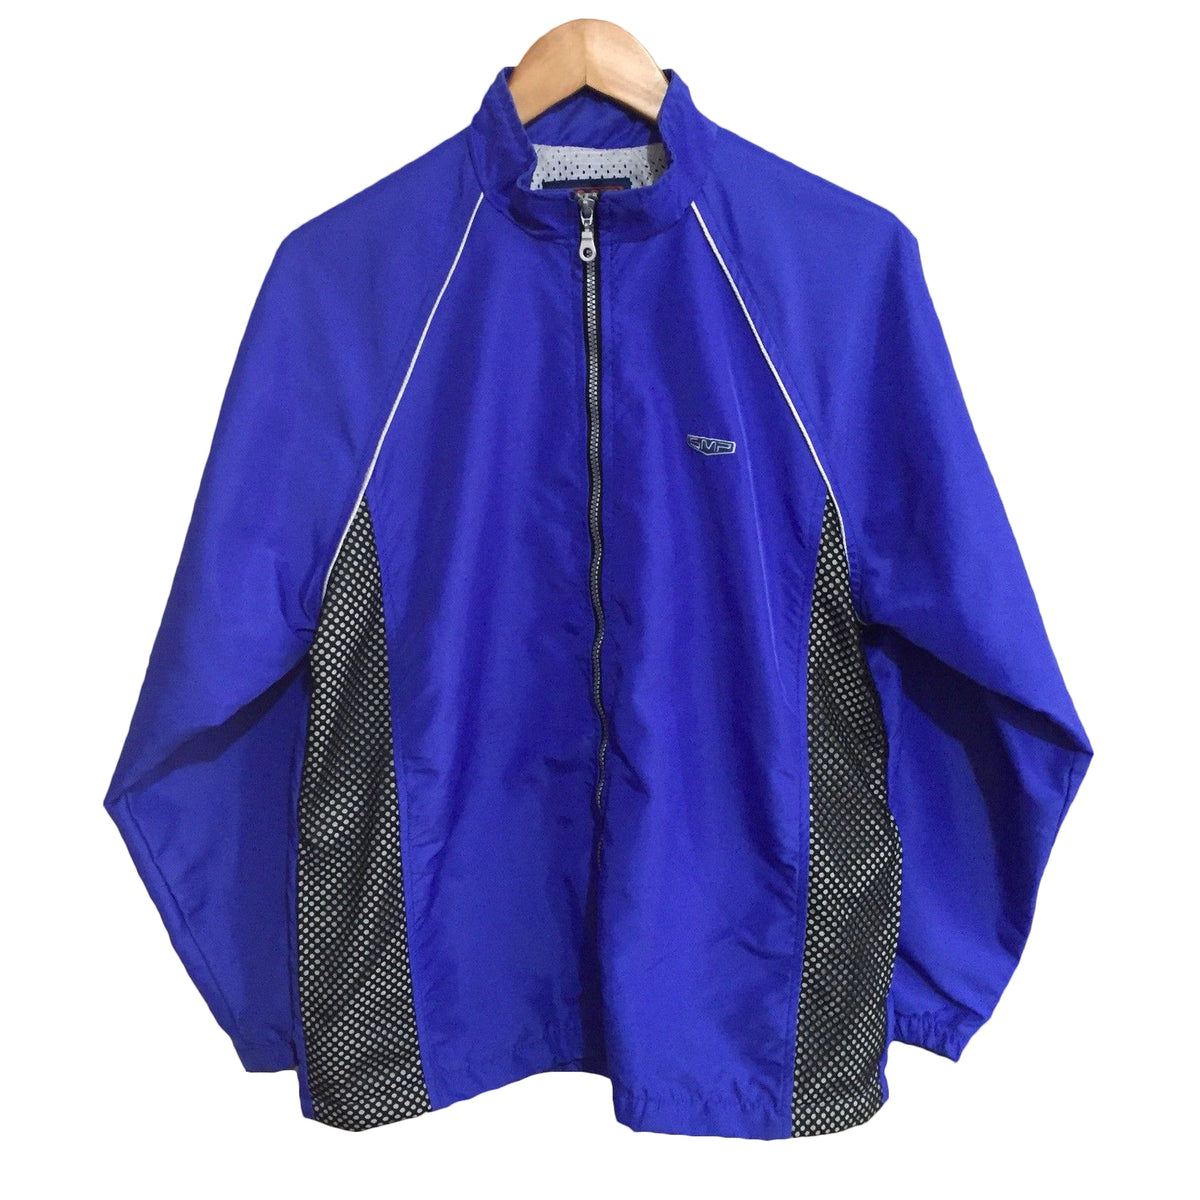 SMP Clothing Windbreaker Full Zip Jacket Mens Small